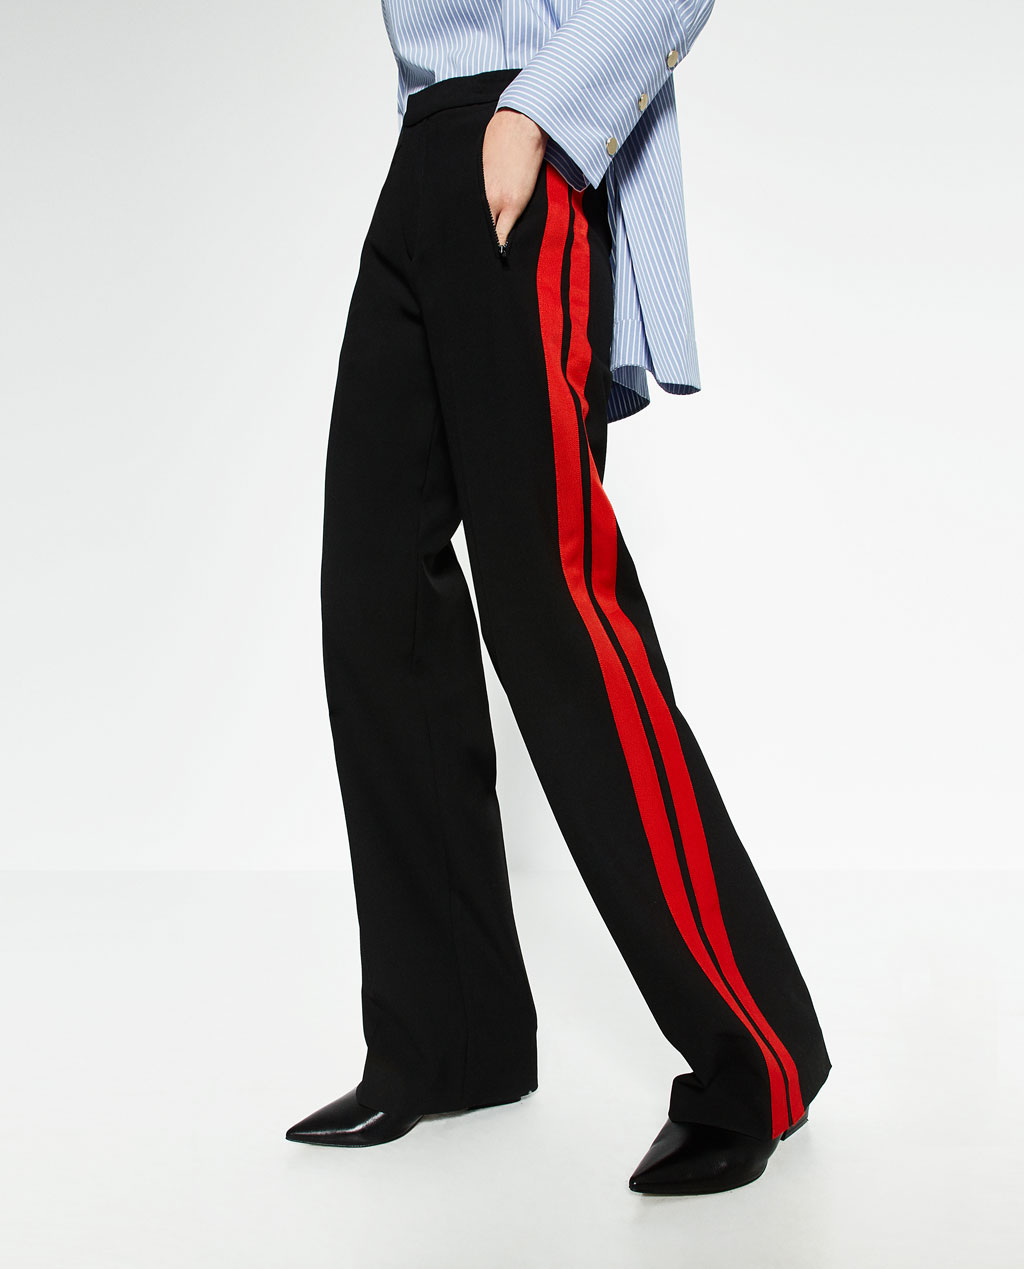 Zara  have introduced some wide, two stripes of red trousers. Very military (very Mulberry AW16) and look strong with a blue and white striped shirt and pointed flats.